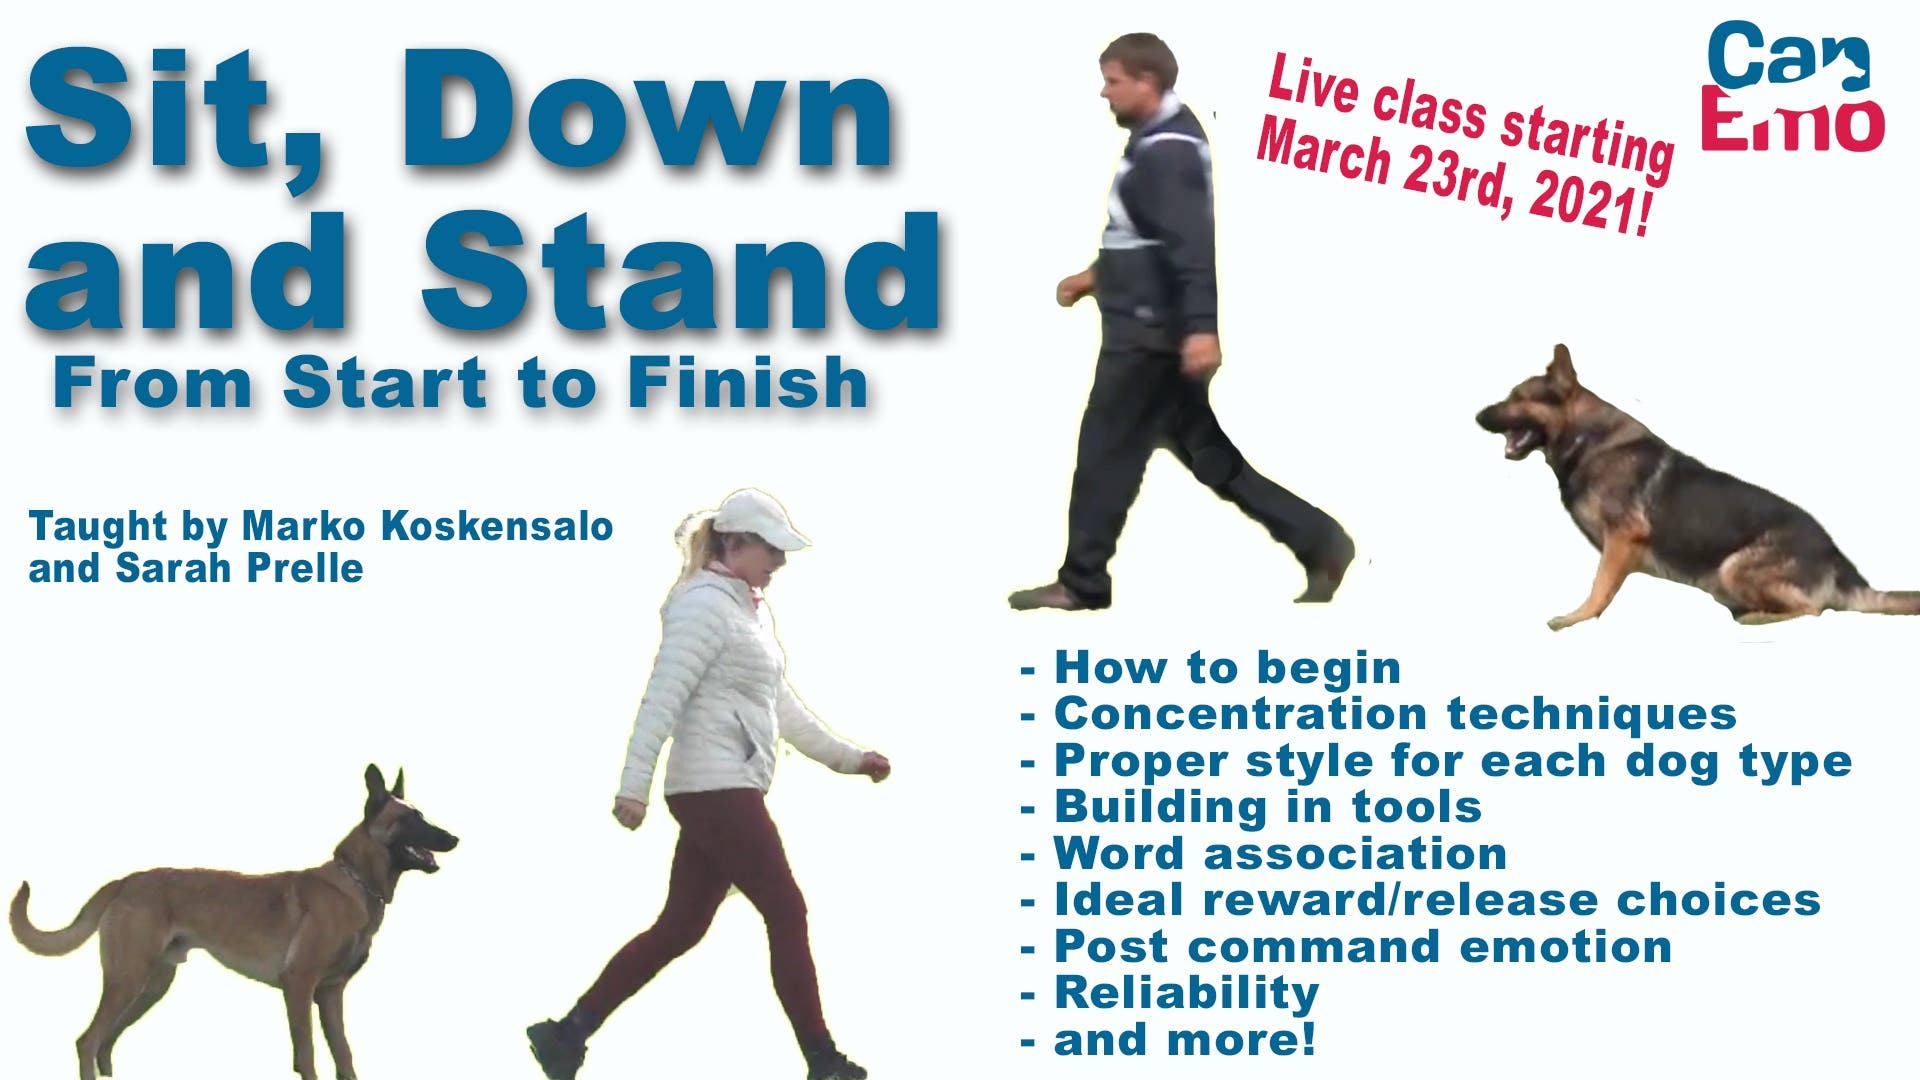 Sit, Down and Stand! From Start to Finish